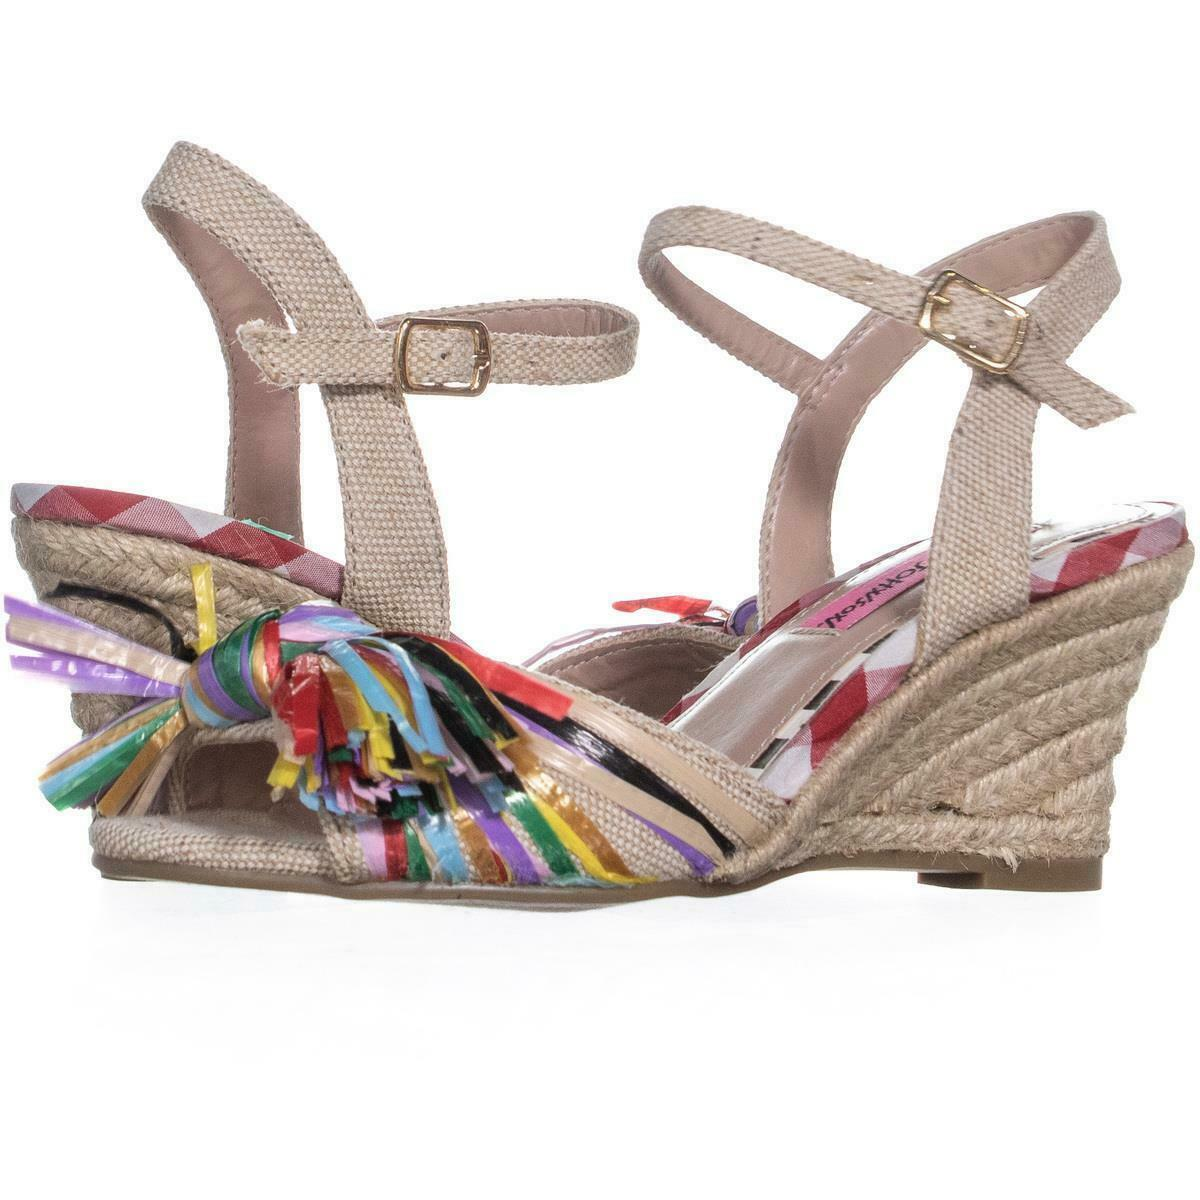 48f8a868e9a Betsey Johnson Sandal: 248 listings